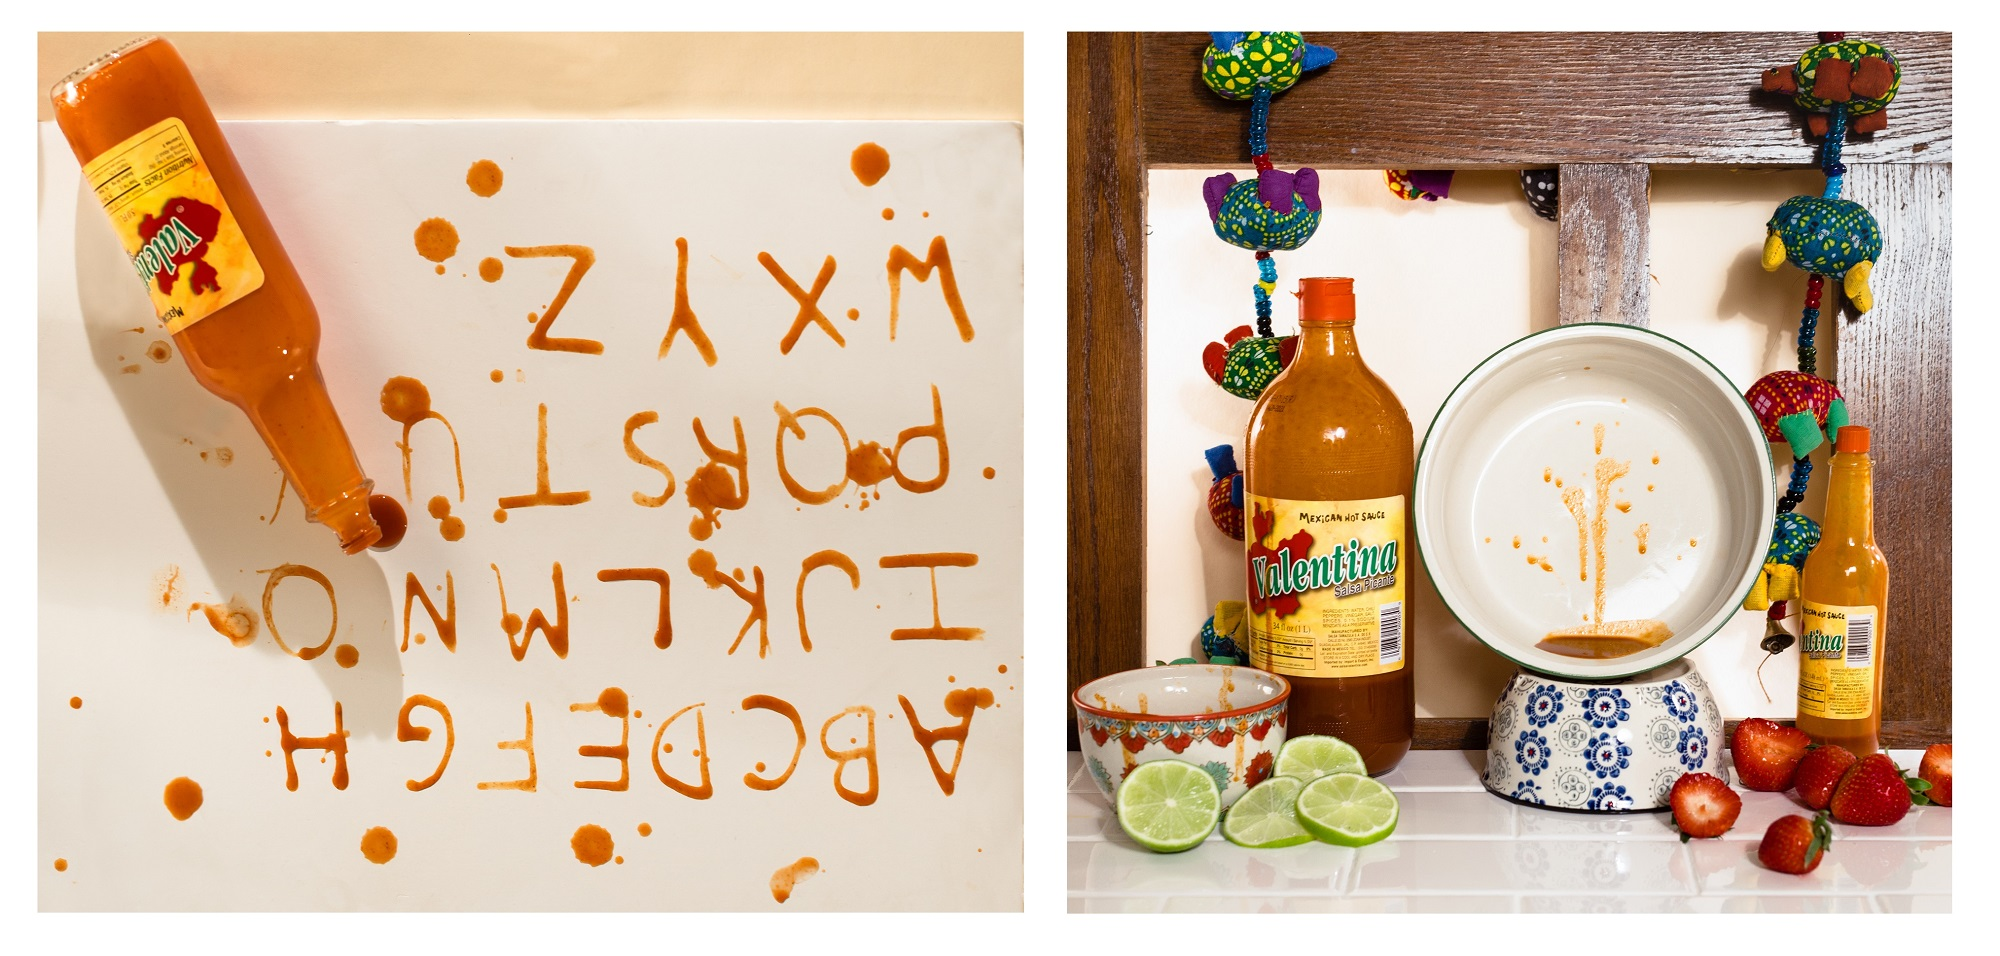 First photo is of the alphabet written with hot sauce, and second shows hot sauce with various bowls